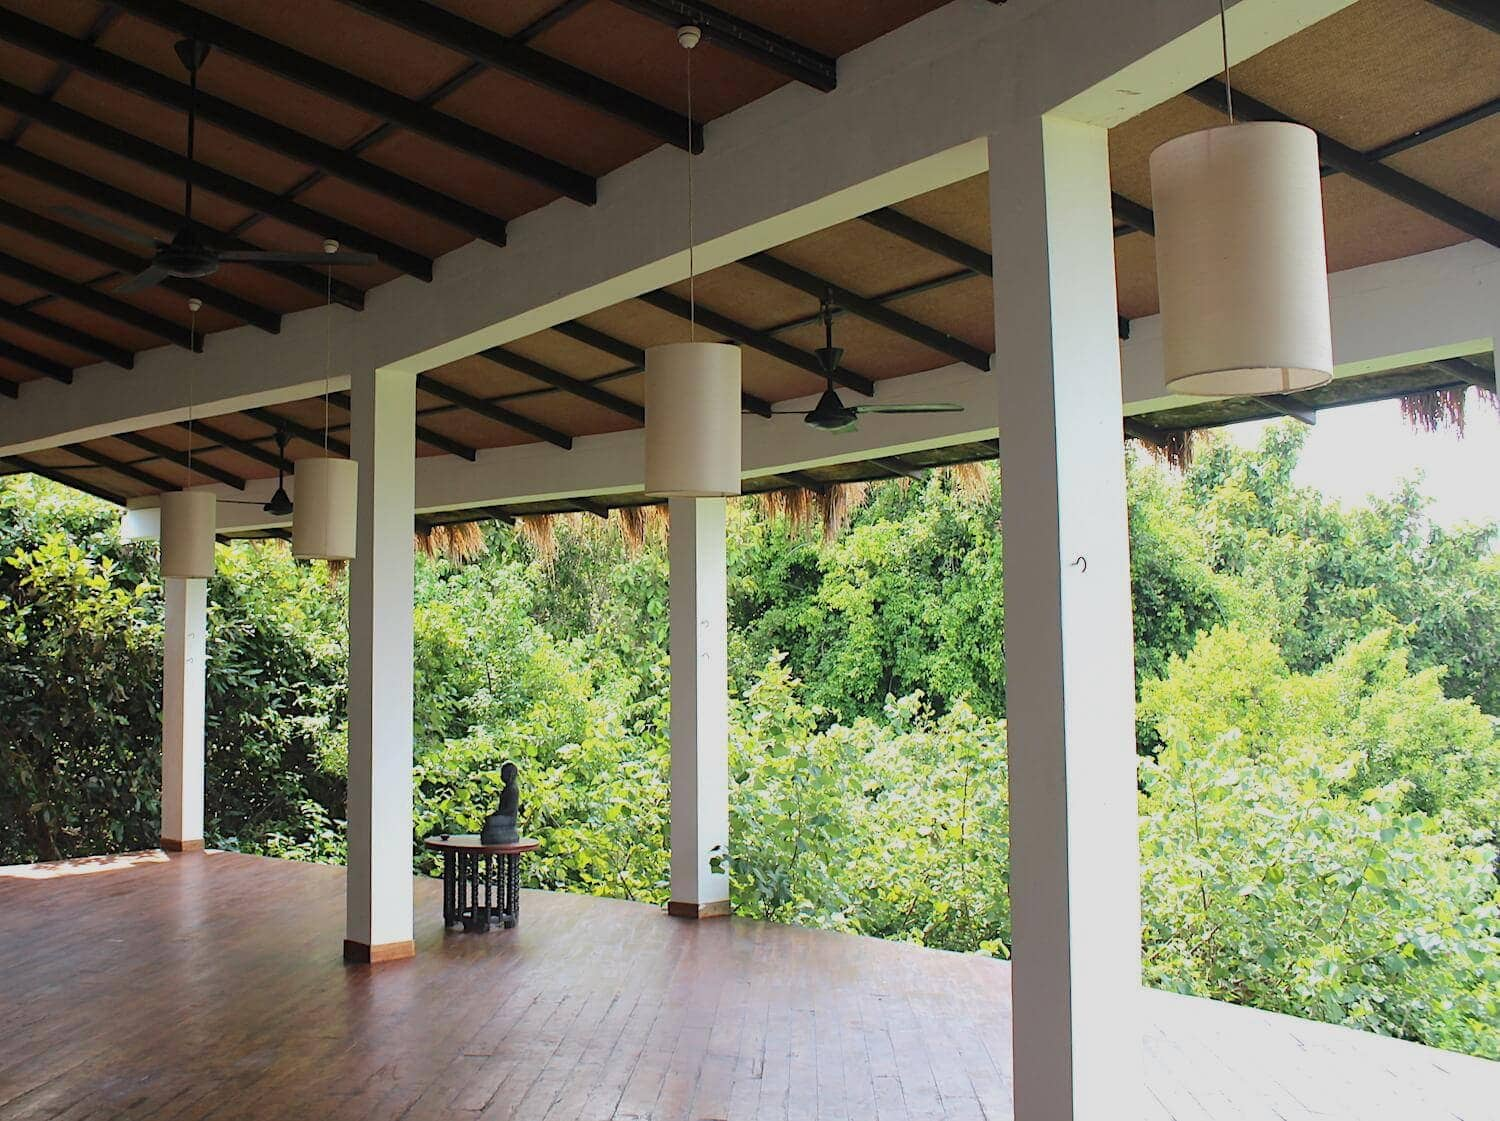 Sen wellness sanctuary, ayurvedic retreat